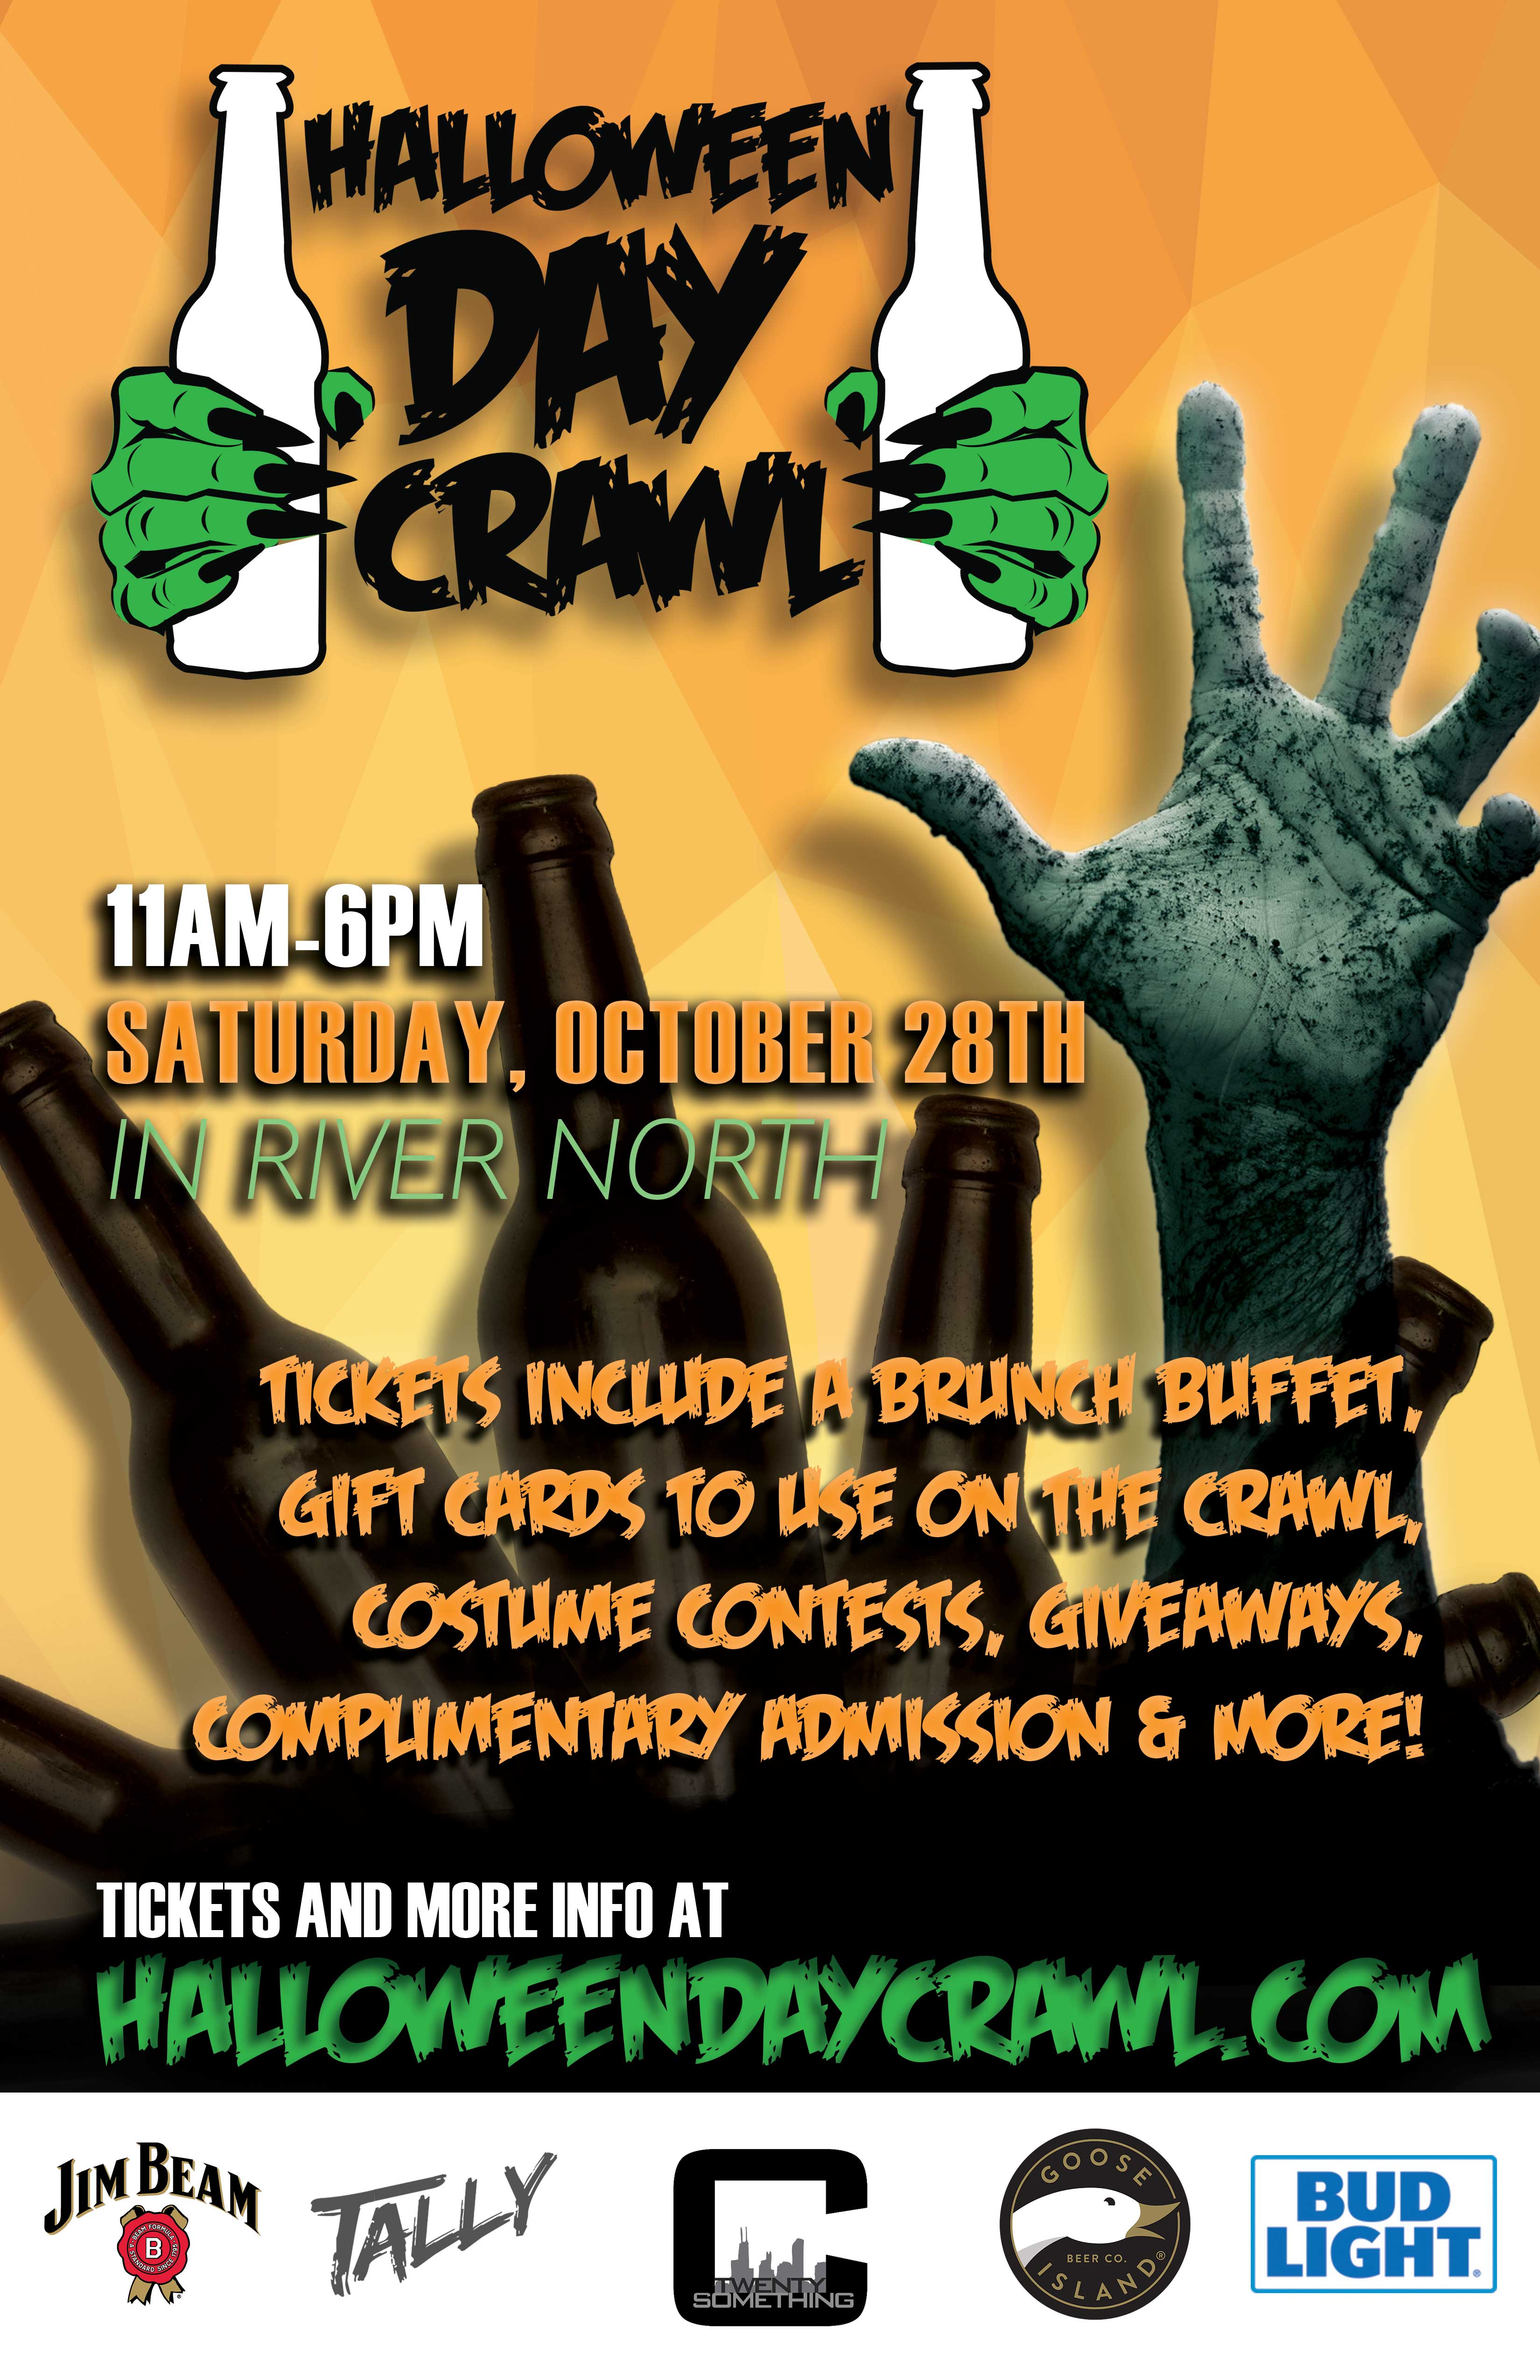 Halloween DAY Crawl Party - Tickets include a brunch buffet, gift cards to use on the crawl, costume contests, giveaways & MORE!